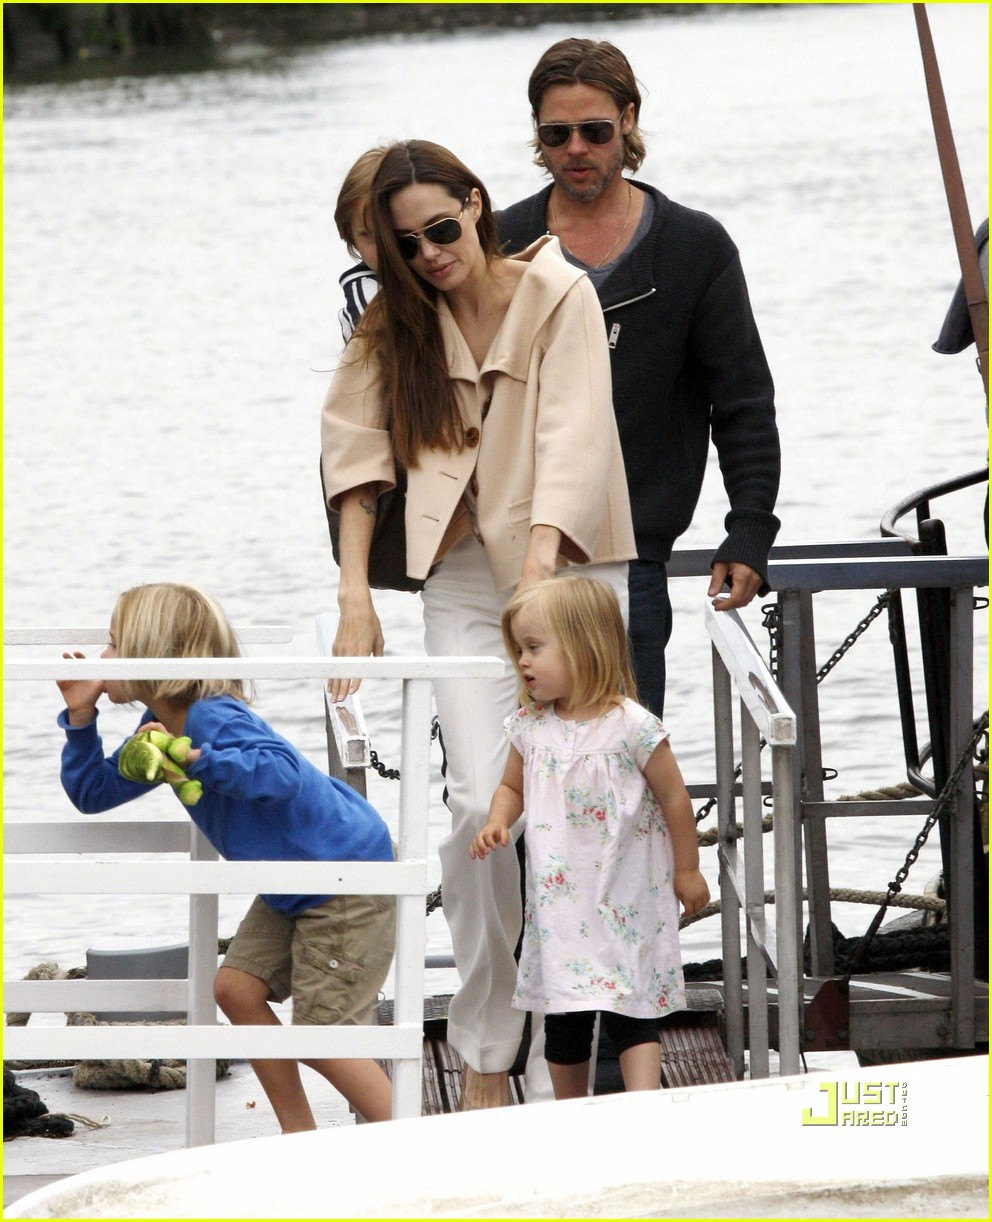 Knox and vivienne jolie pitt 2013